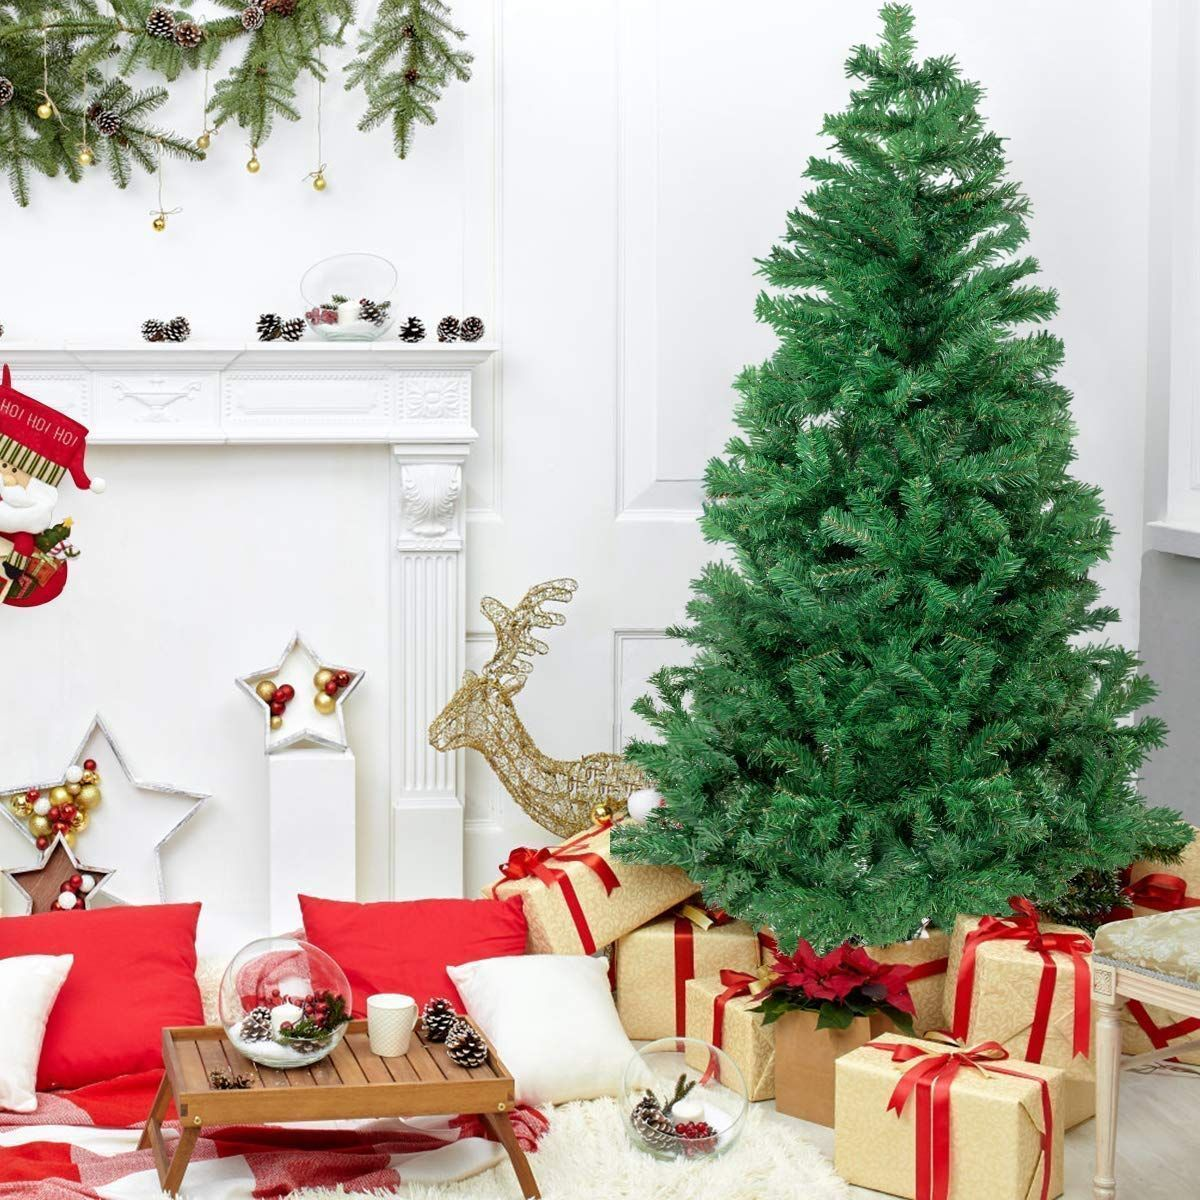 Fat Kid Deals On Twitter Artificial Christmas Tree Only 24 Type In Code 5snh5csp Https T Co Znrr0xyuxb